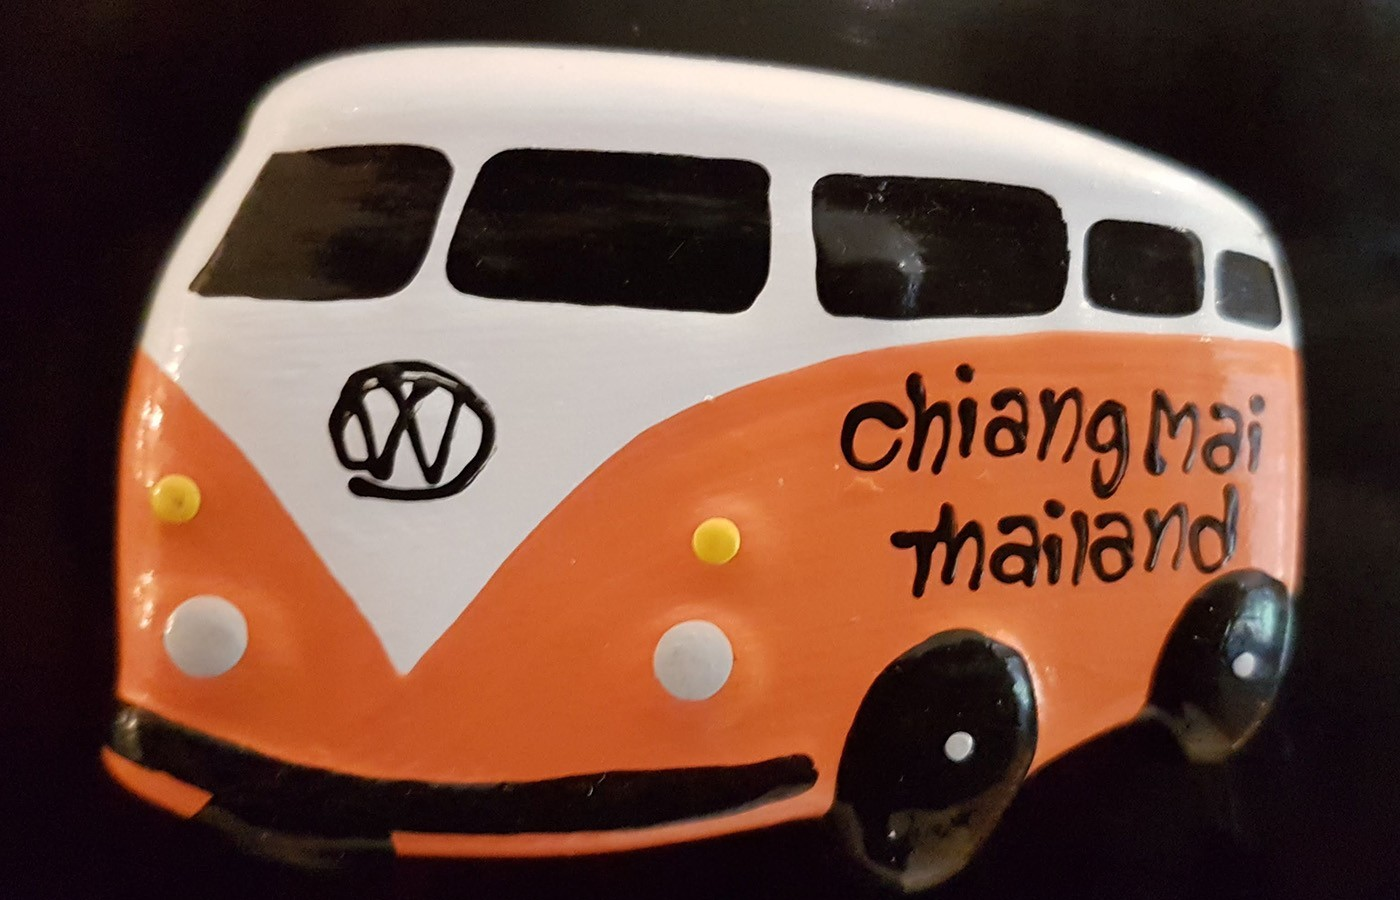 vwcampervan fridge magnet